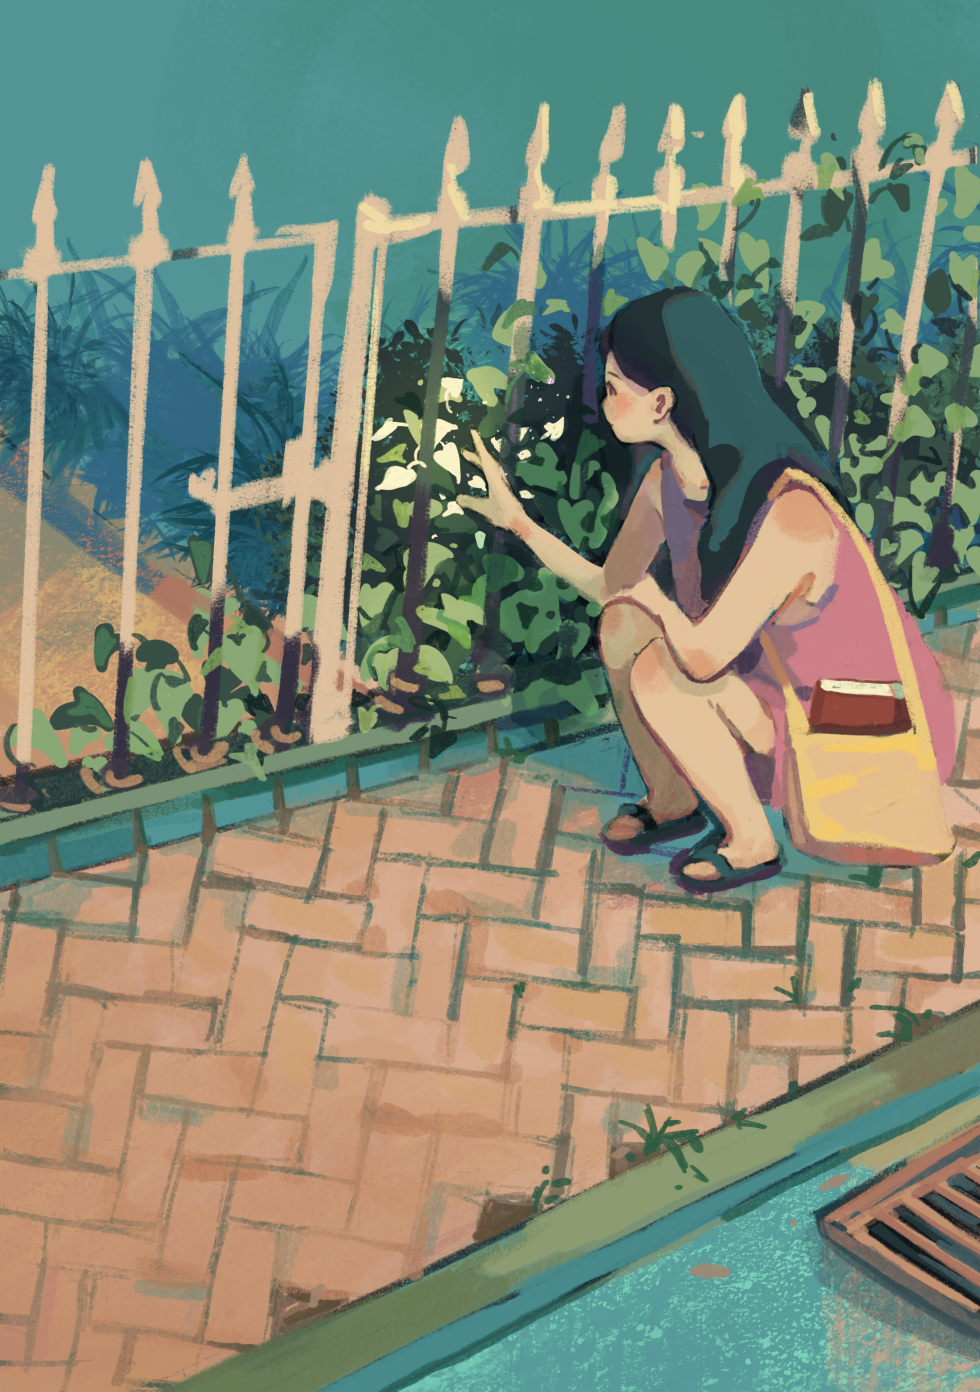 Digital Illustration about a girl and her friend Having Lunch during lunch break/ Digital Illustration about a girl chilling on her bed/ Digital Illustration about a girl observing vines on a sidewalk.